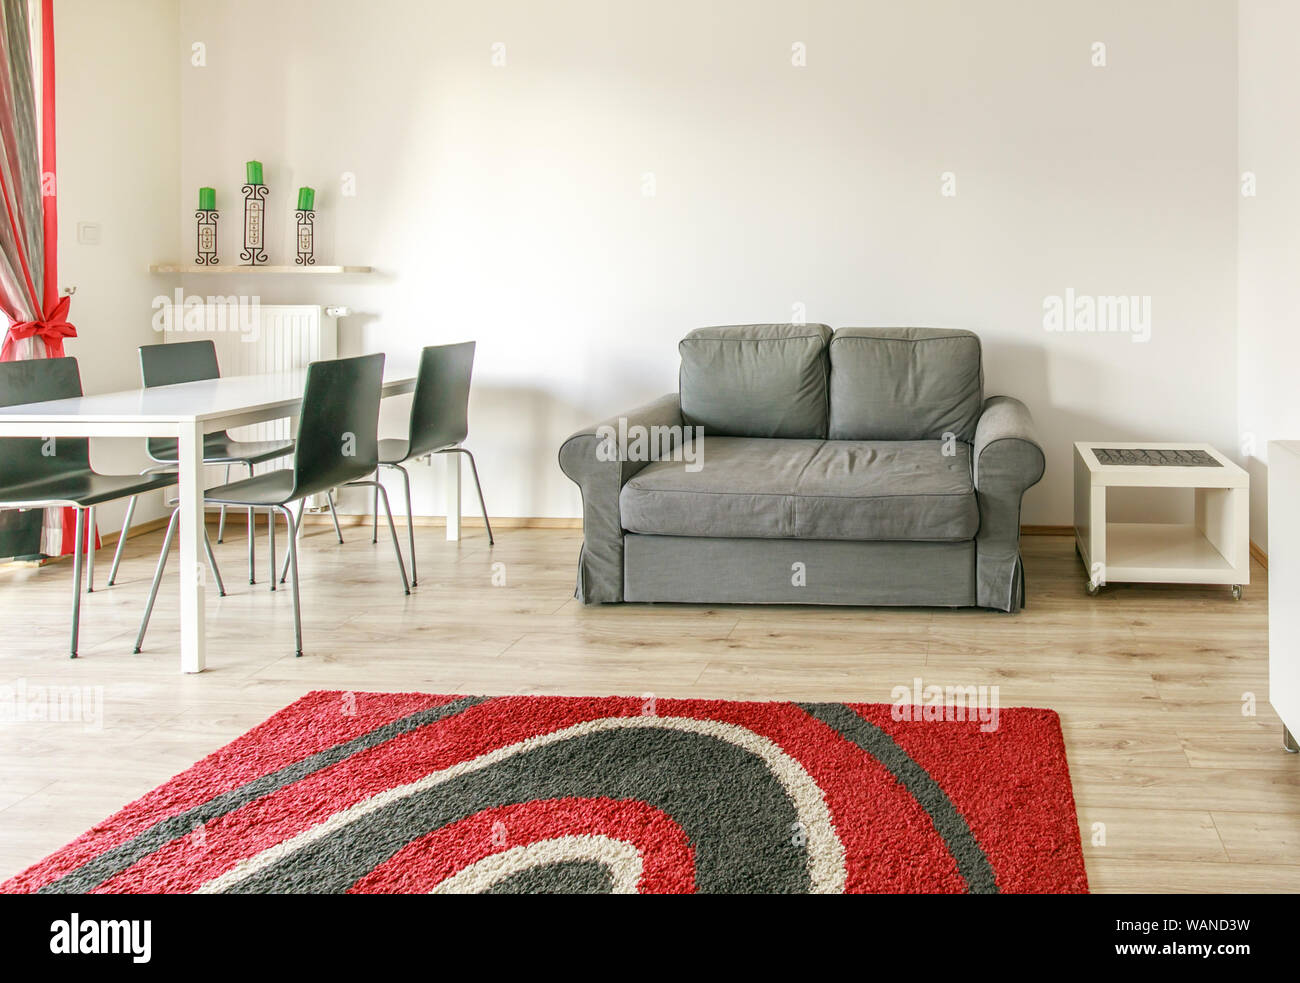 New Furnished Apartment White Living Room With Black And Red Carpet Grey Sofa And A Nice View Stock Photo Alamy